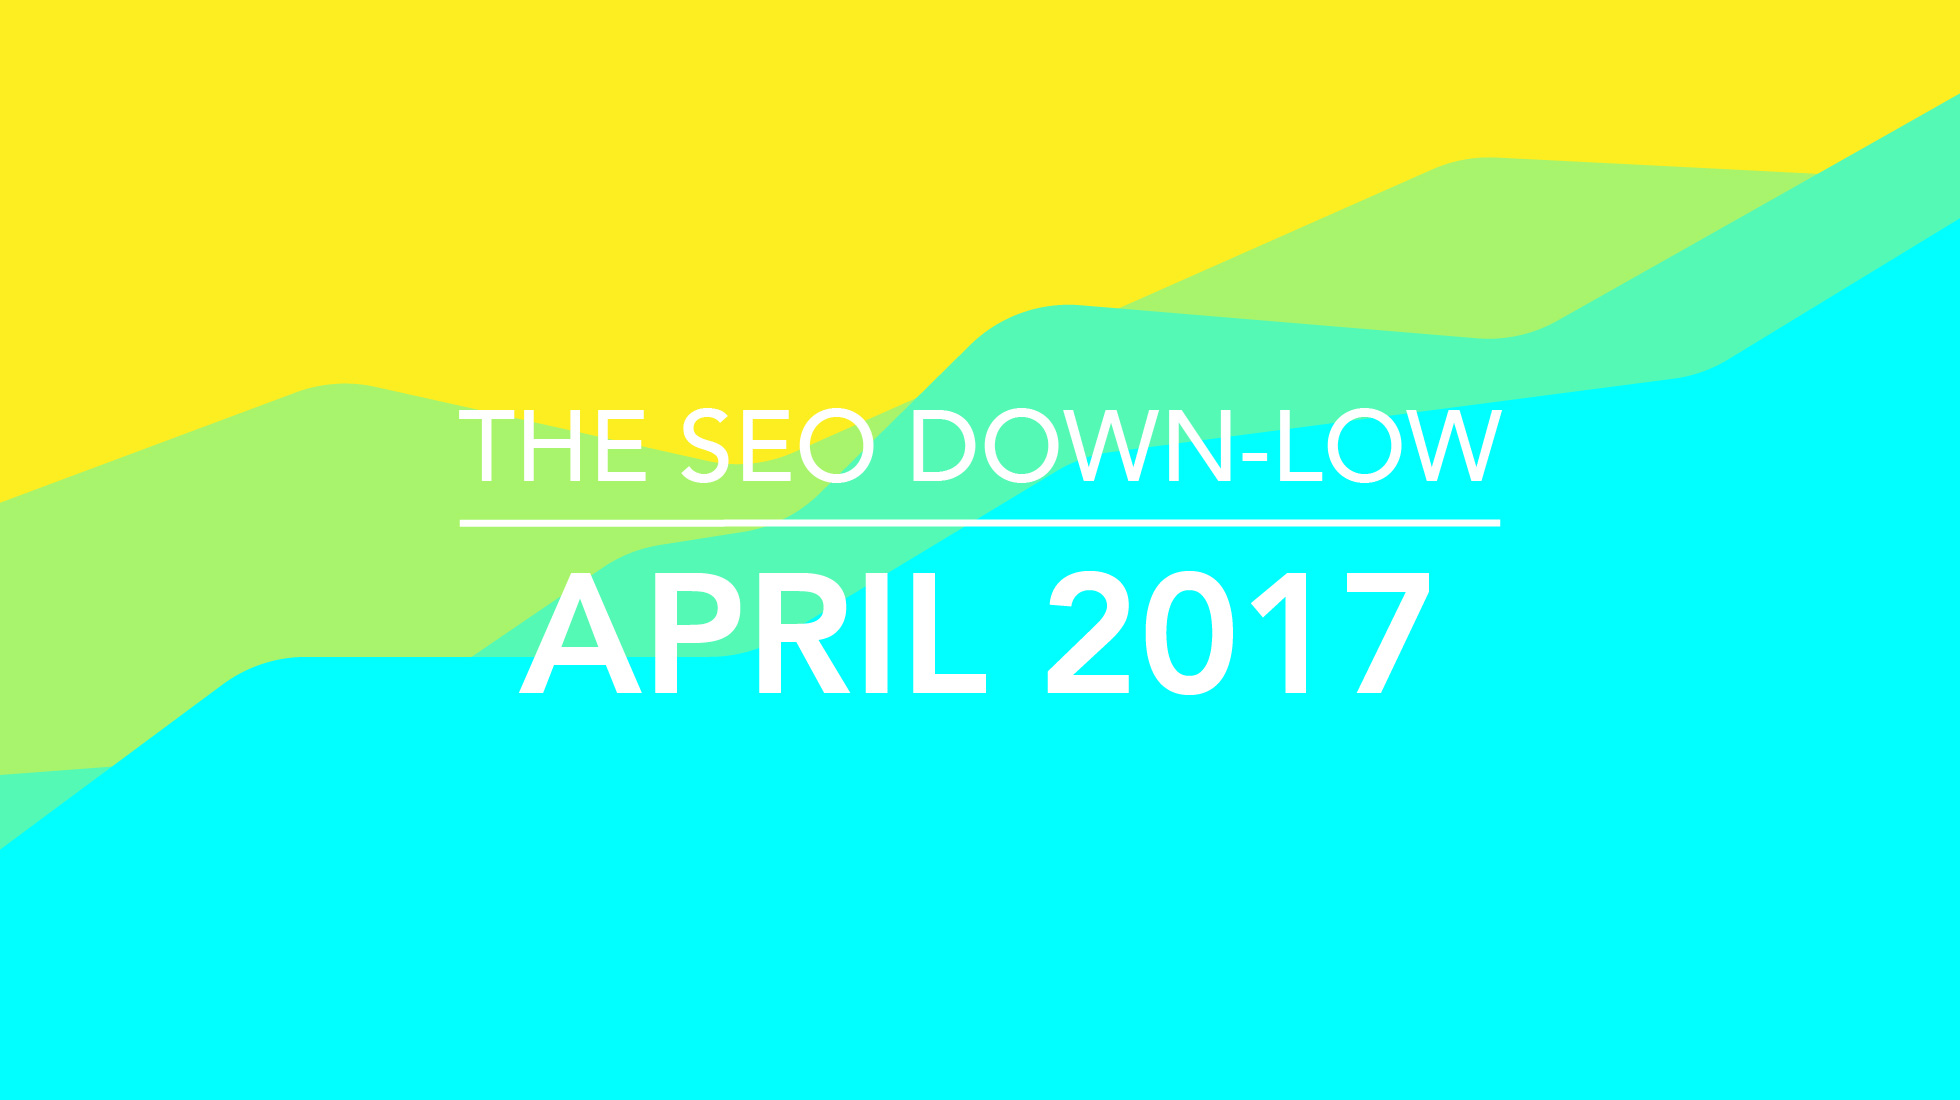 The SEO Down Low - April 2017